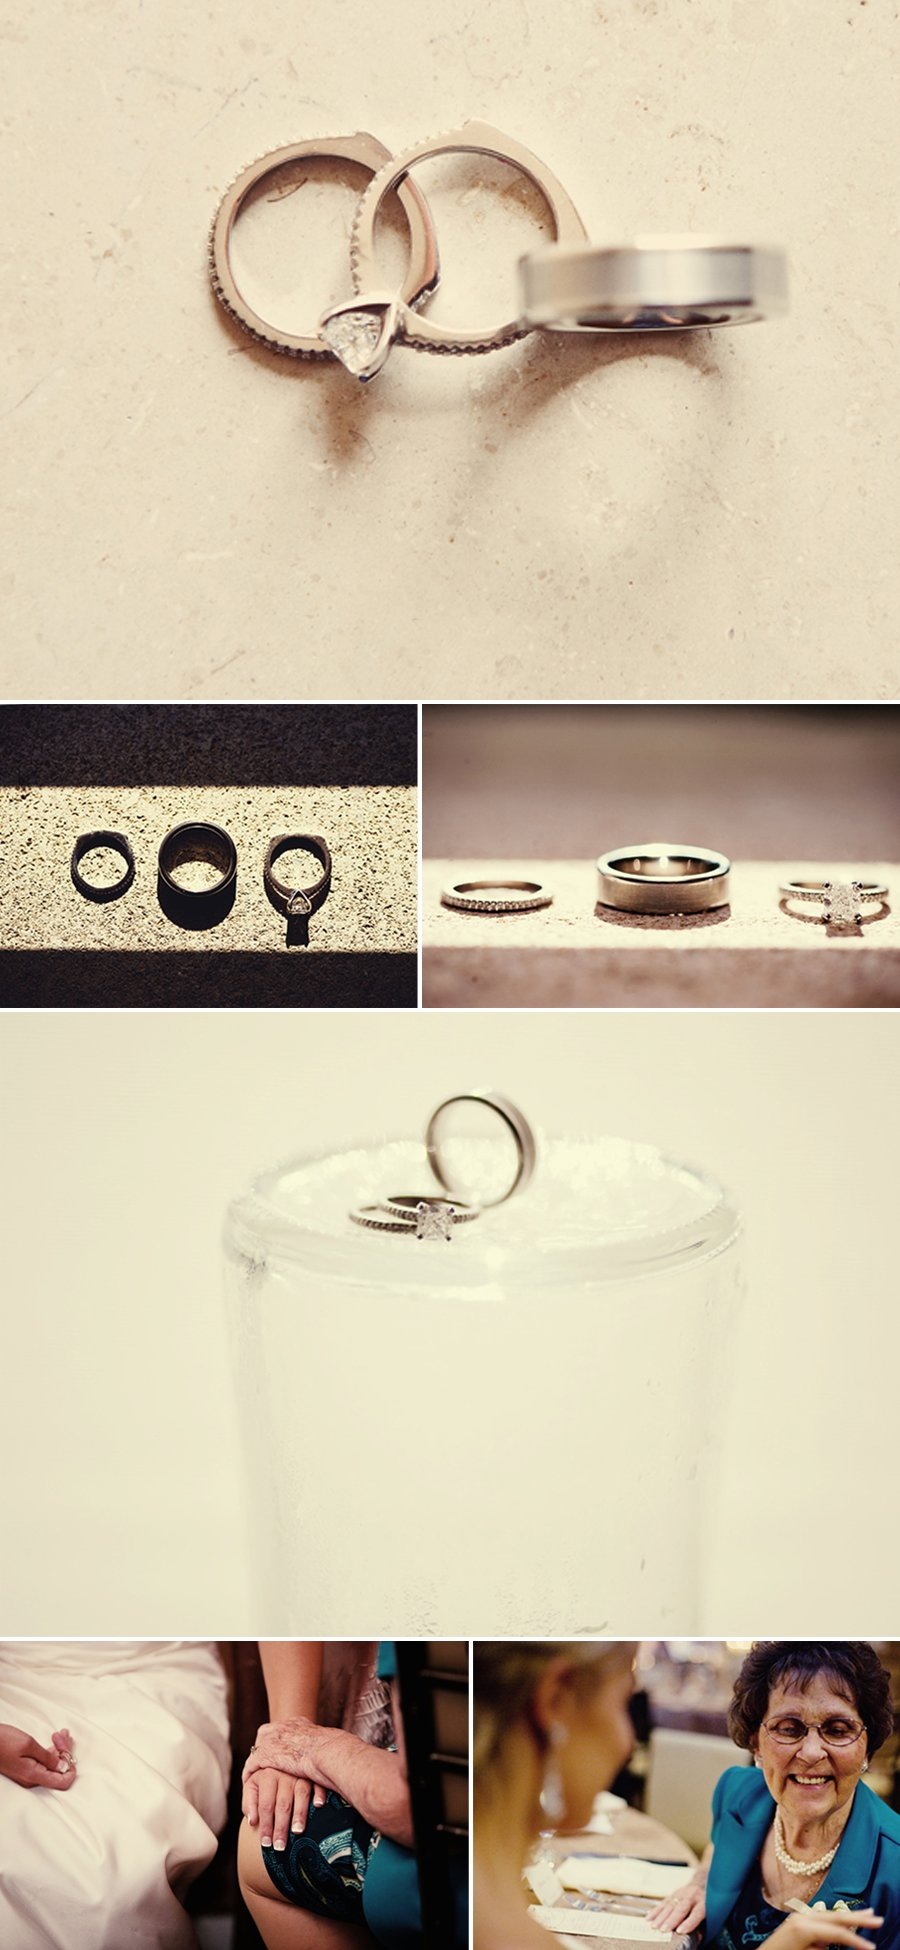 Real-wedding-artistic-engagement-ring-wedding-bands-photos.full